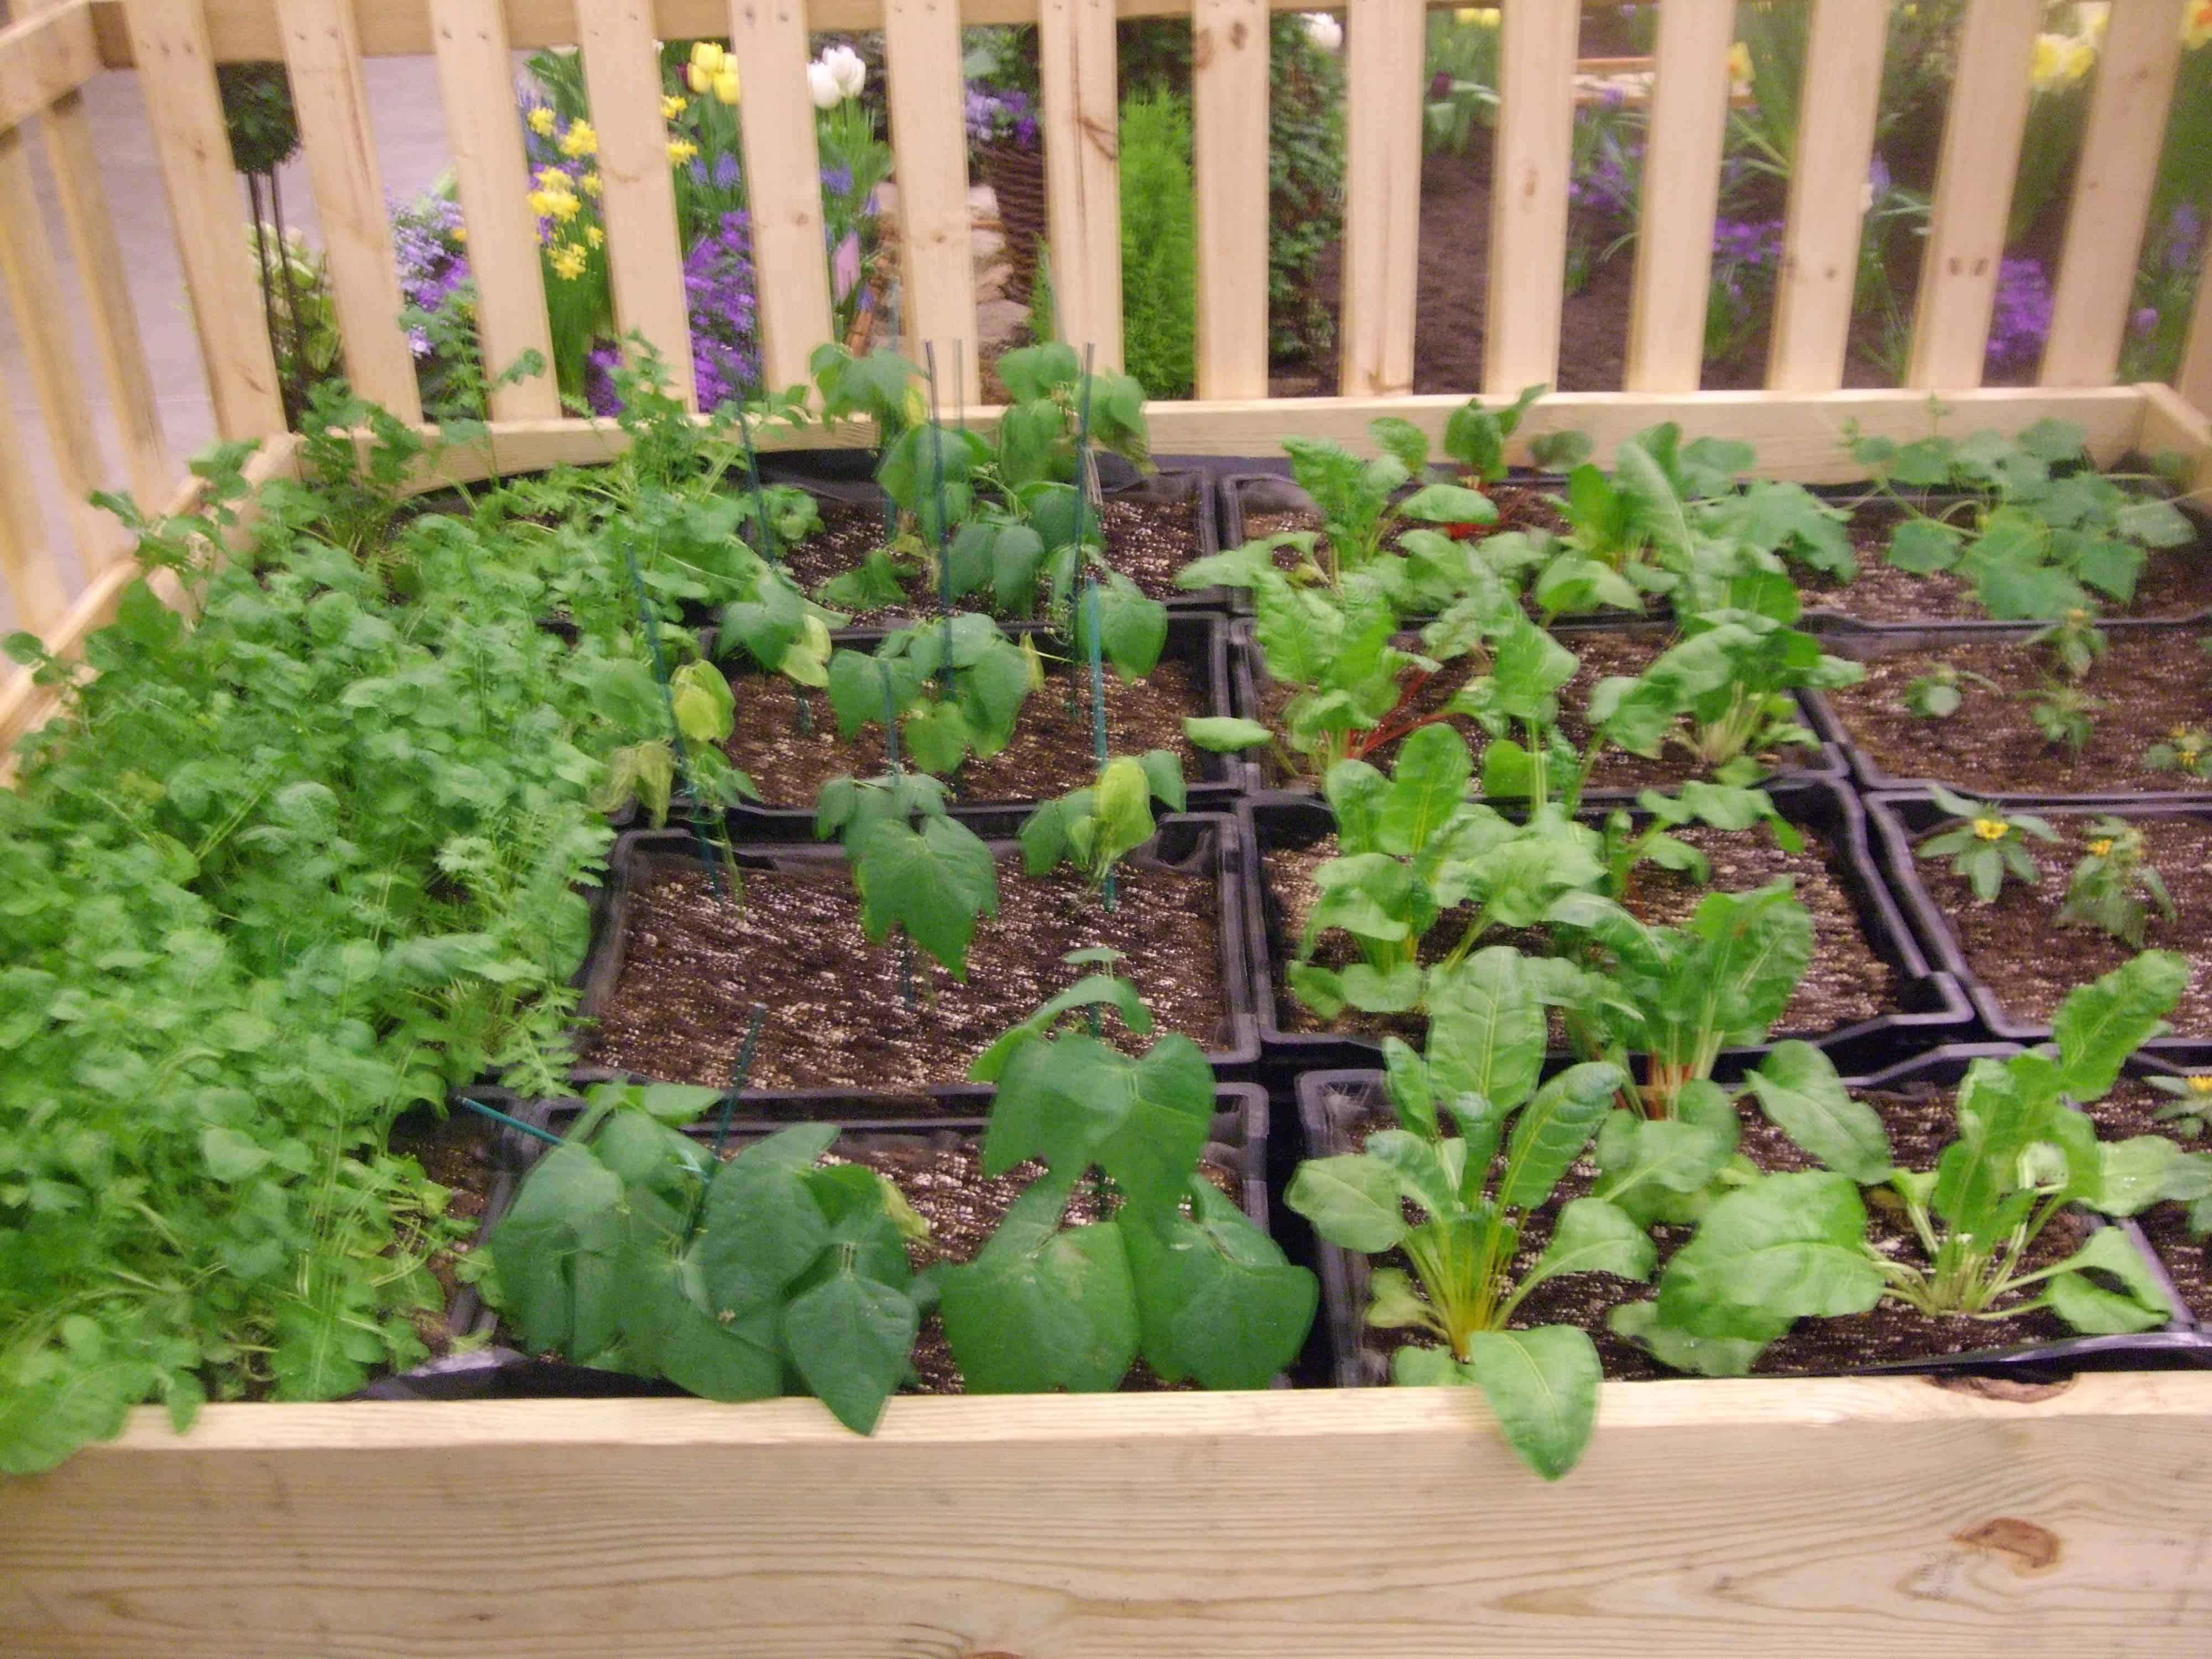 gardening in a milk crate is pretty much the same idea as square foot gardening its kind of amazing what you can grow in these happy little plastic boxes - Milk Crate Garden